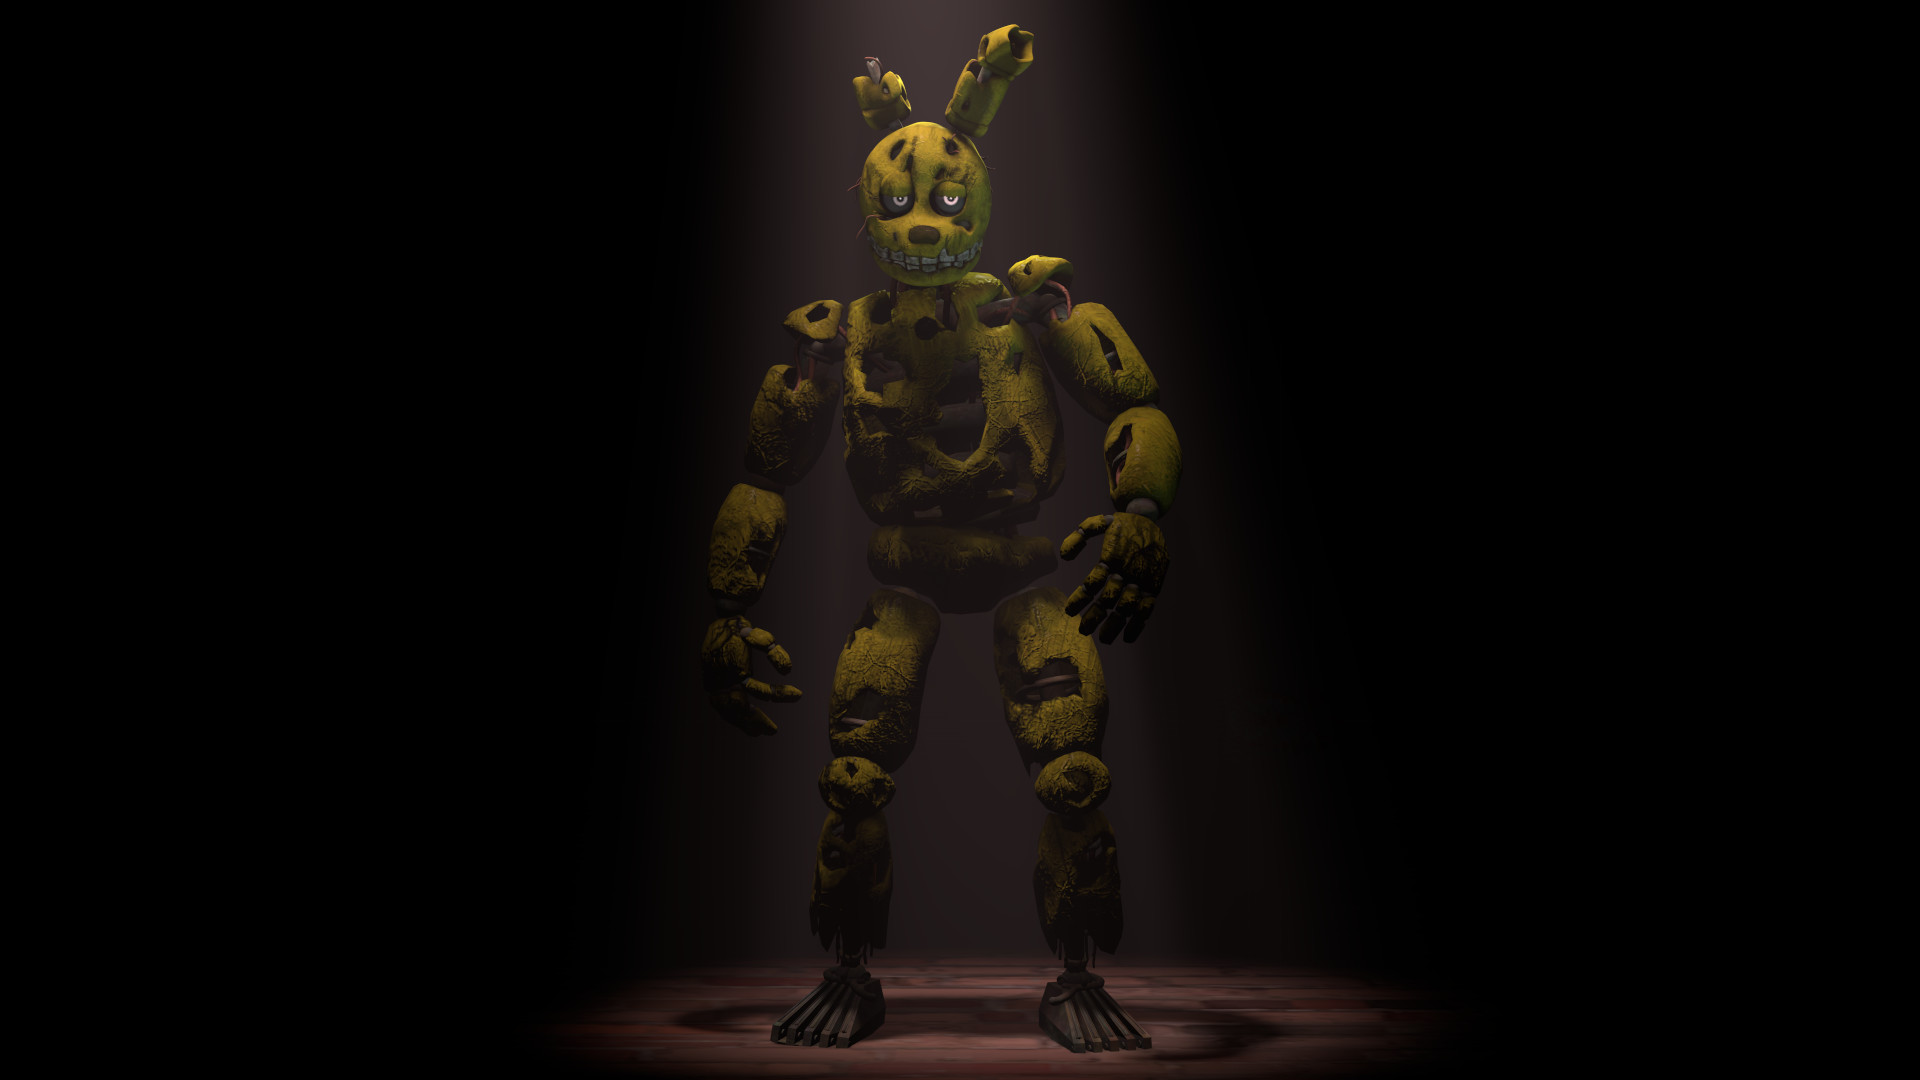 Five Nights at Freddy's 3 Game Character